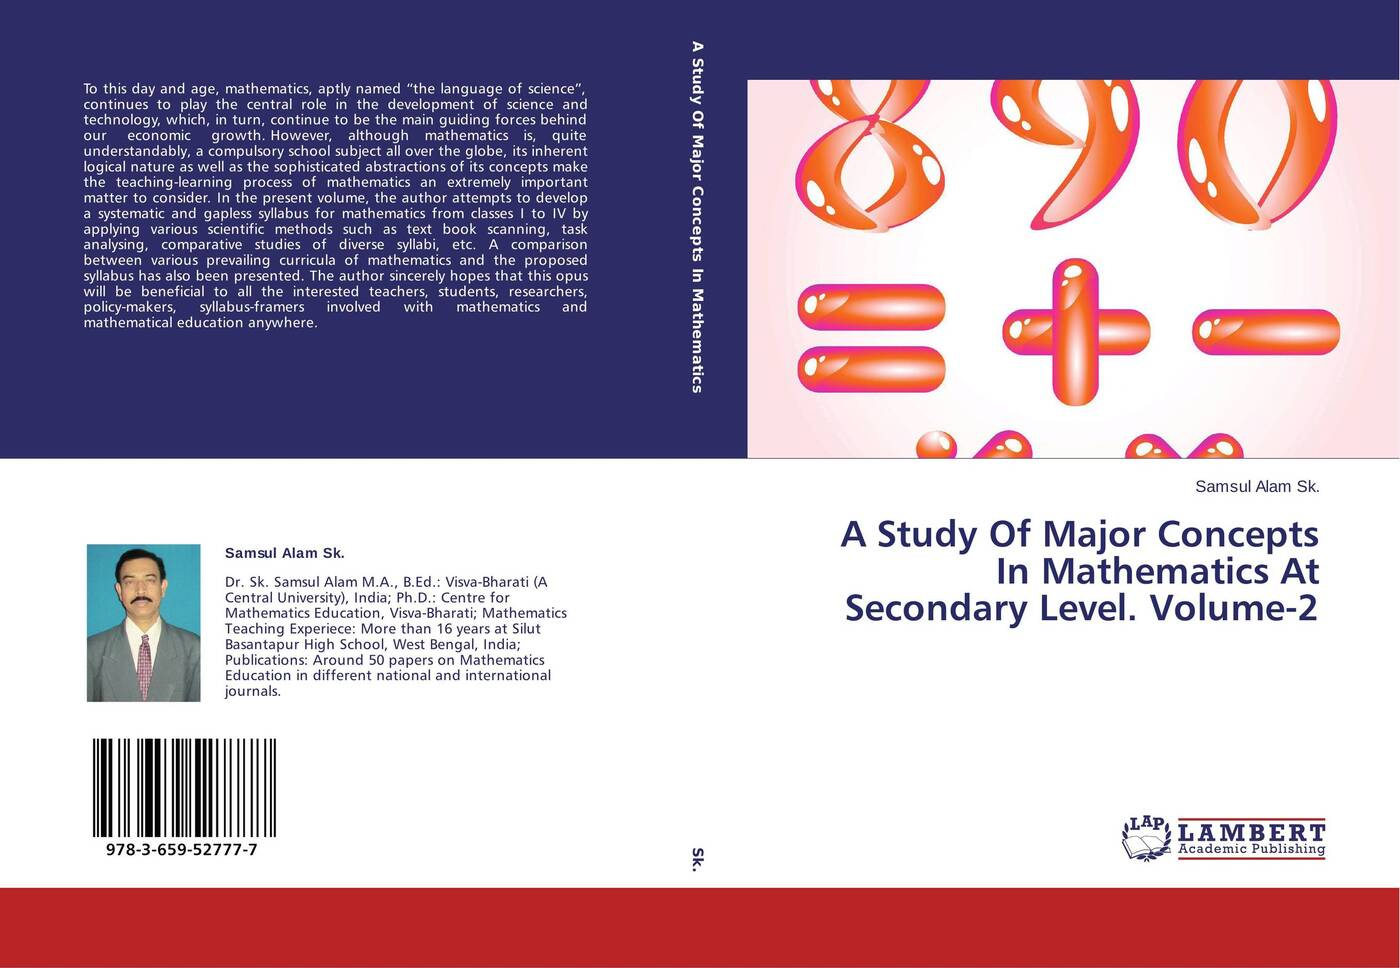 Samsul Alam Sk. A Study Of Major Concepts In Mathematics At Secondary Level. Volume-2 committee of the teaching of mathematics to students of engineering syllabus of mathematics